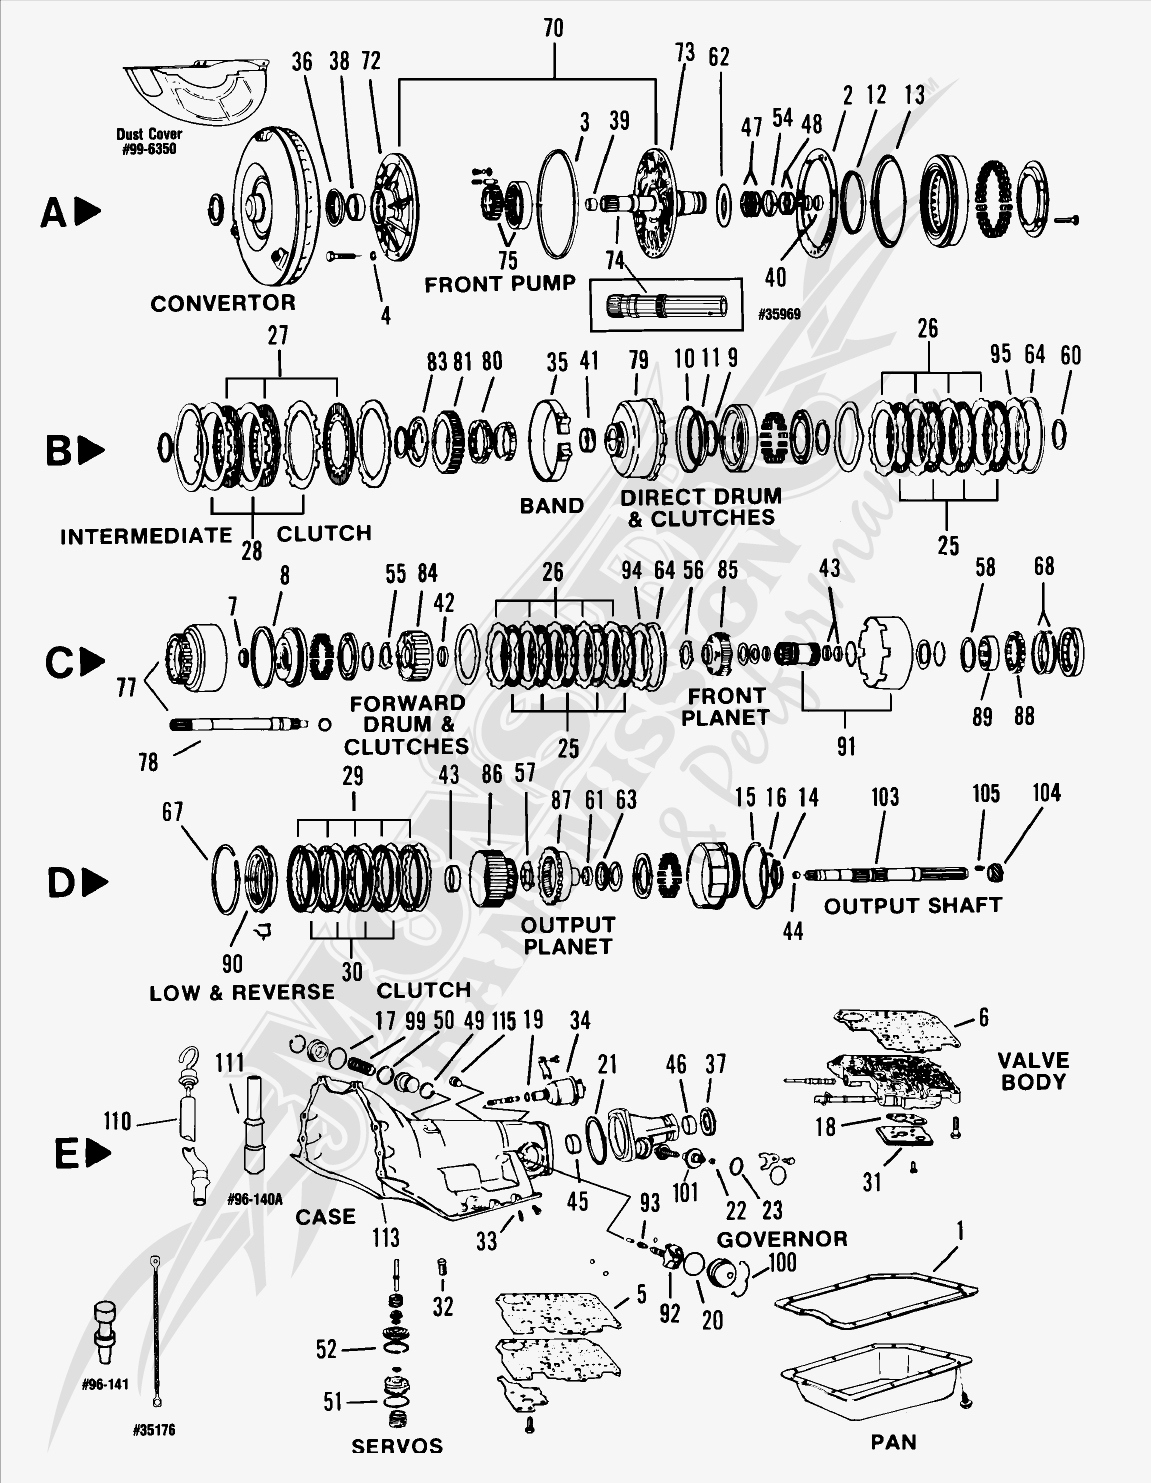 Wiring Diagram For Motorized Bicycle, Wiring, Get Free